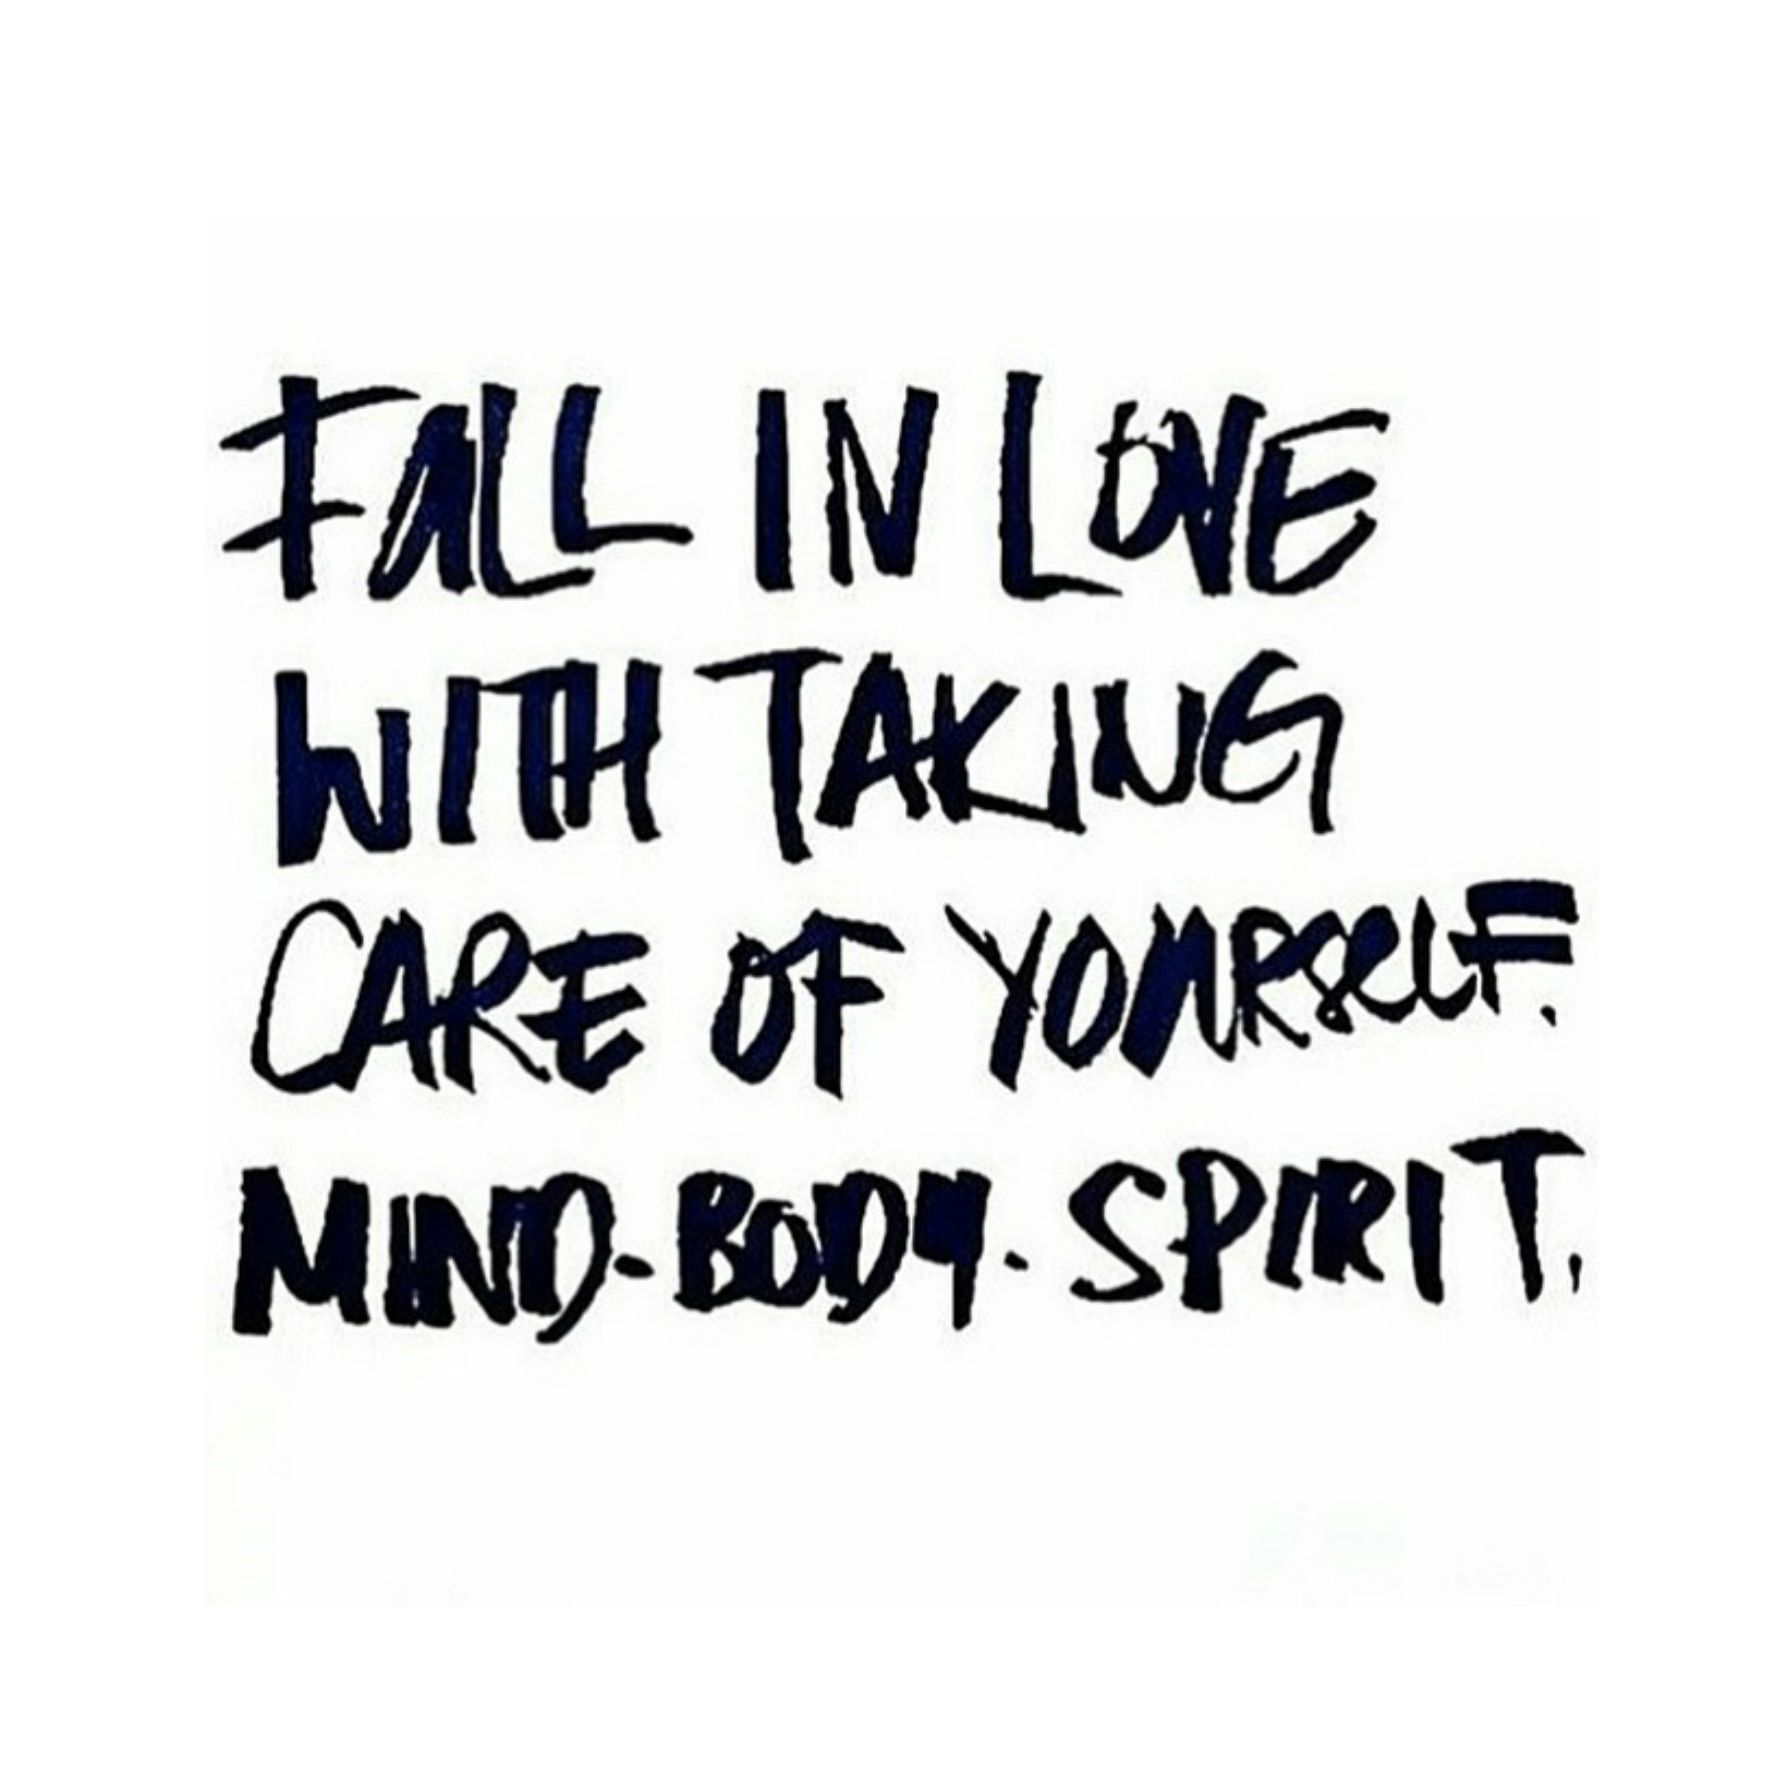 Take Time To Heal And Refuel